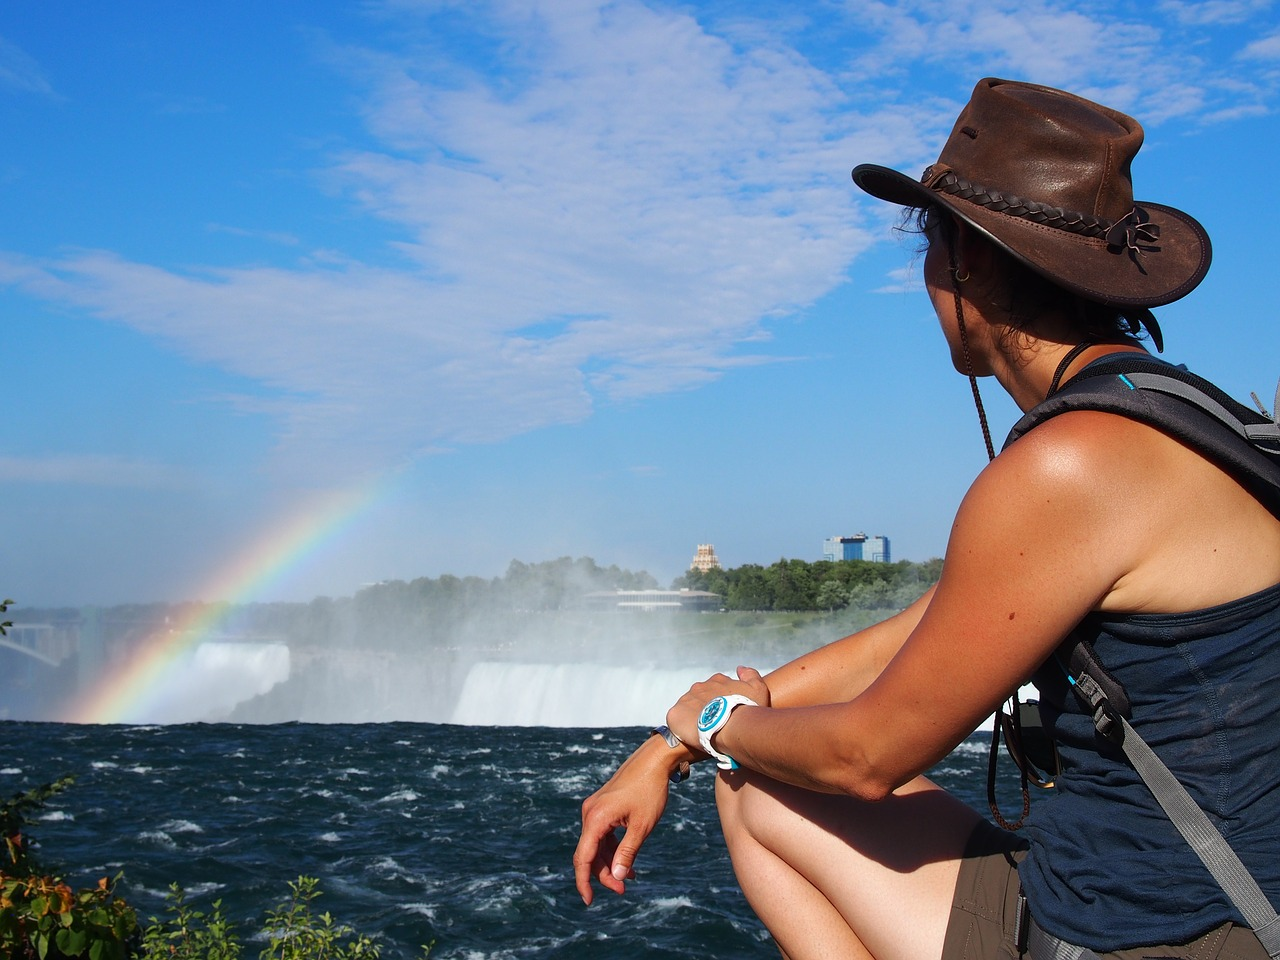 Summertime Outdoor Activities at Niagara Falls #niagara